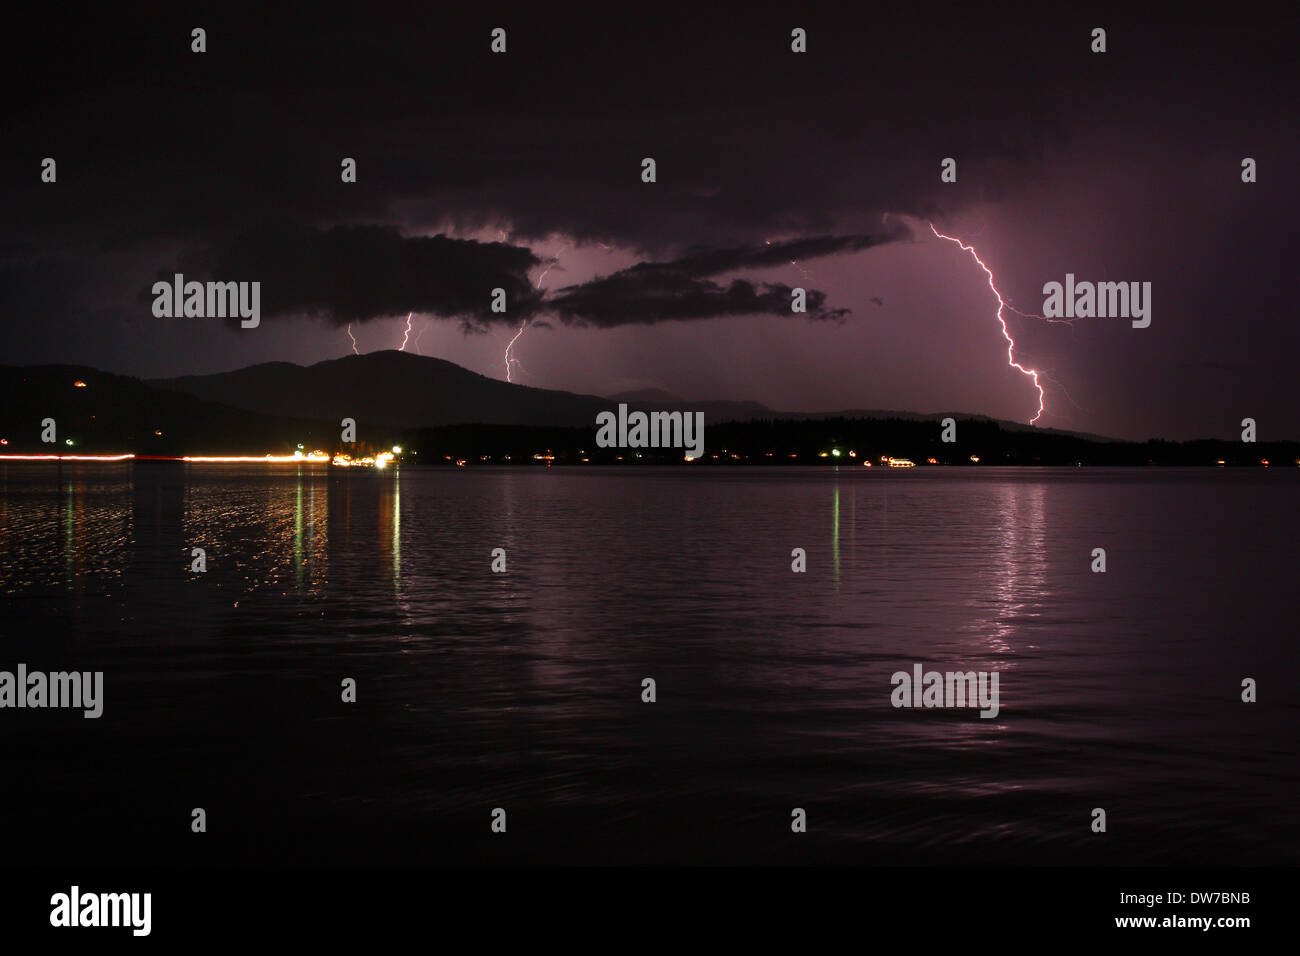 Thunder & lighting storm in the cloudy, purple night sky, reflecting onto the lake water in Sandpoint Idaho. - Stock Image